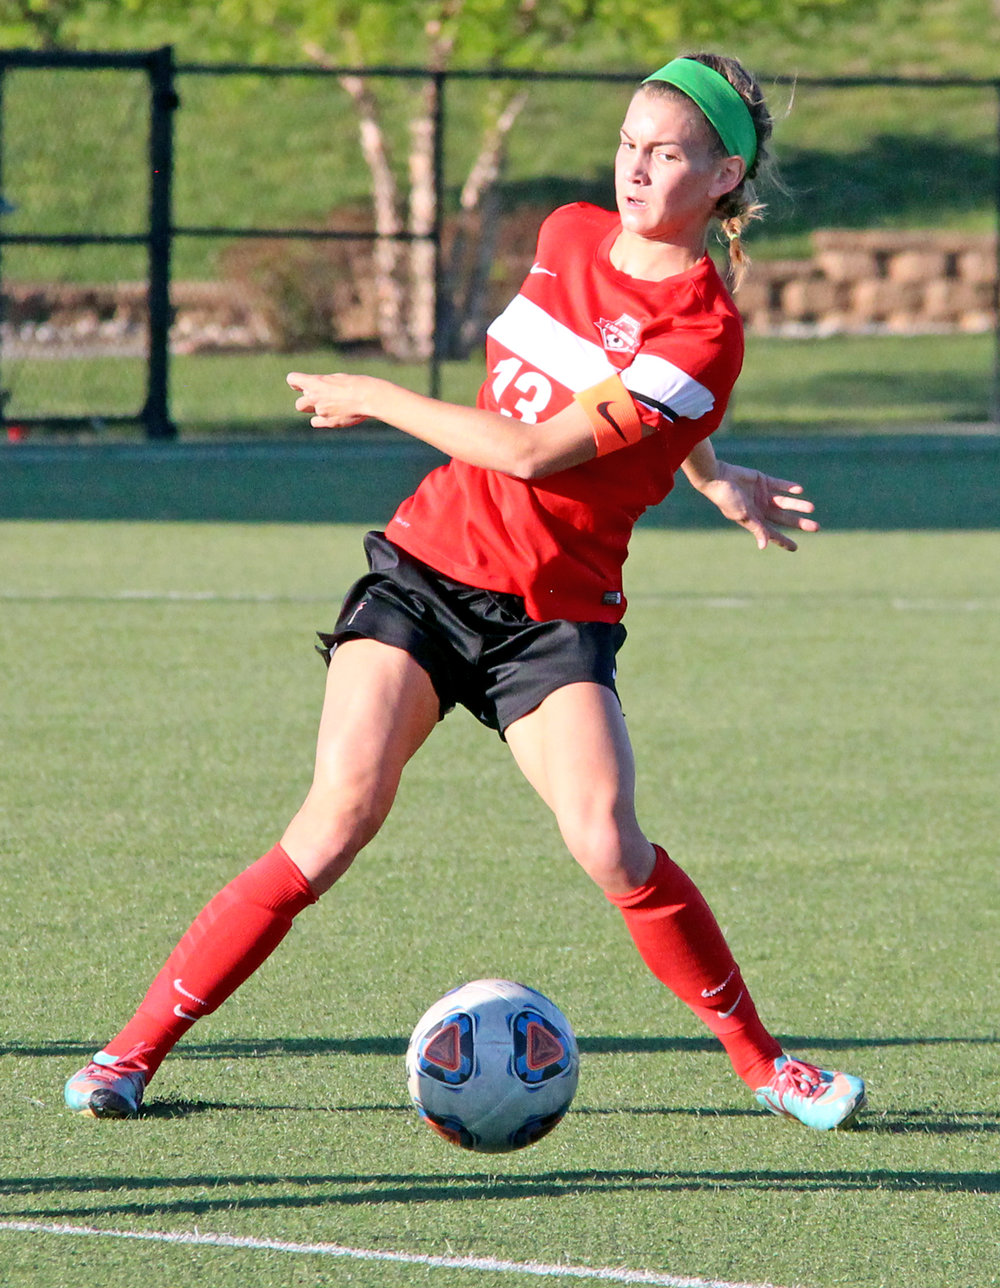 ROSS MARTIN/Citizen photo Park Hill senior defender Jenna Winebrenner looks to make a pass against Park Hill South on Saturday, May 6 at Park Hill District Soccer Complex in Riverside, Mo.